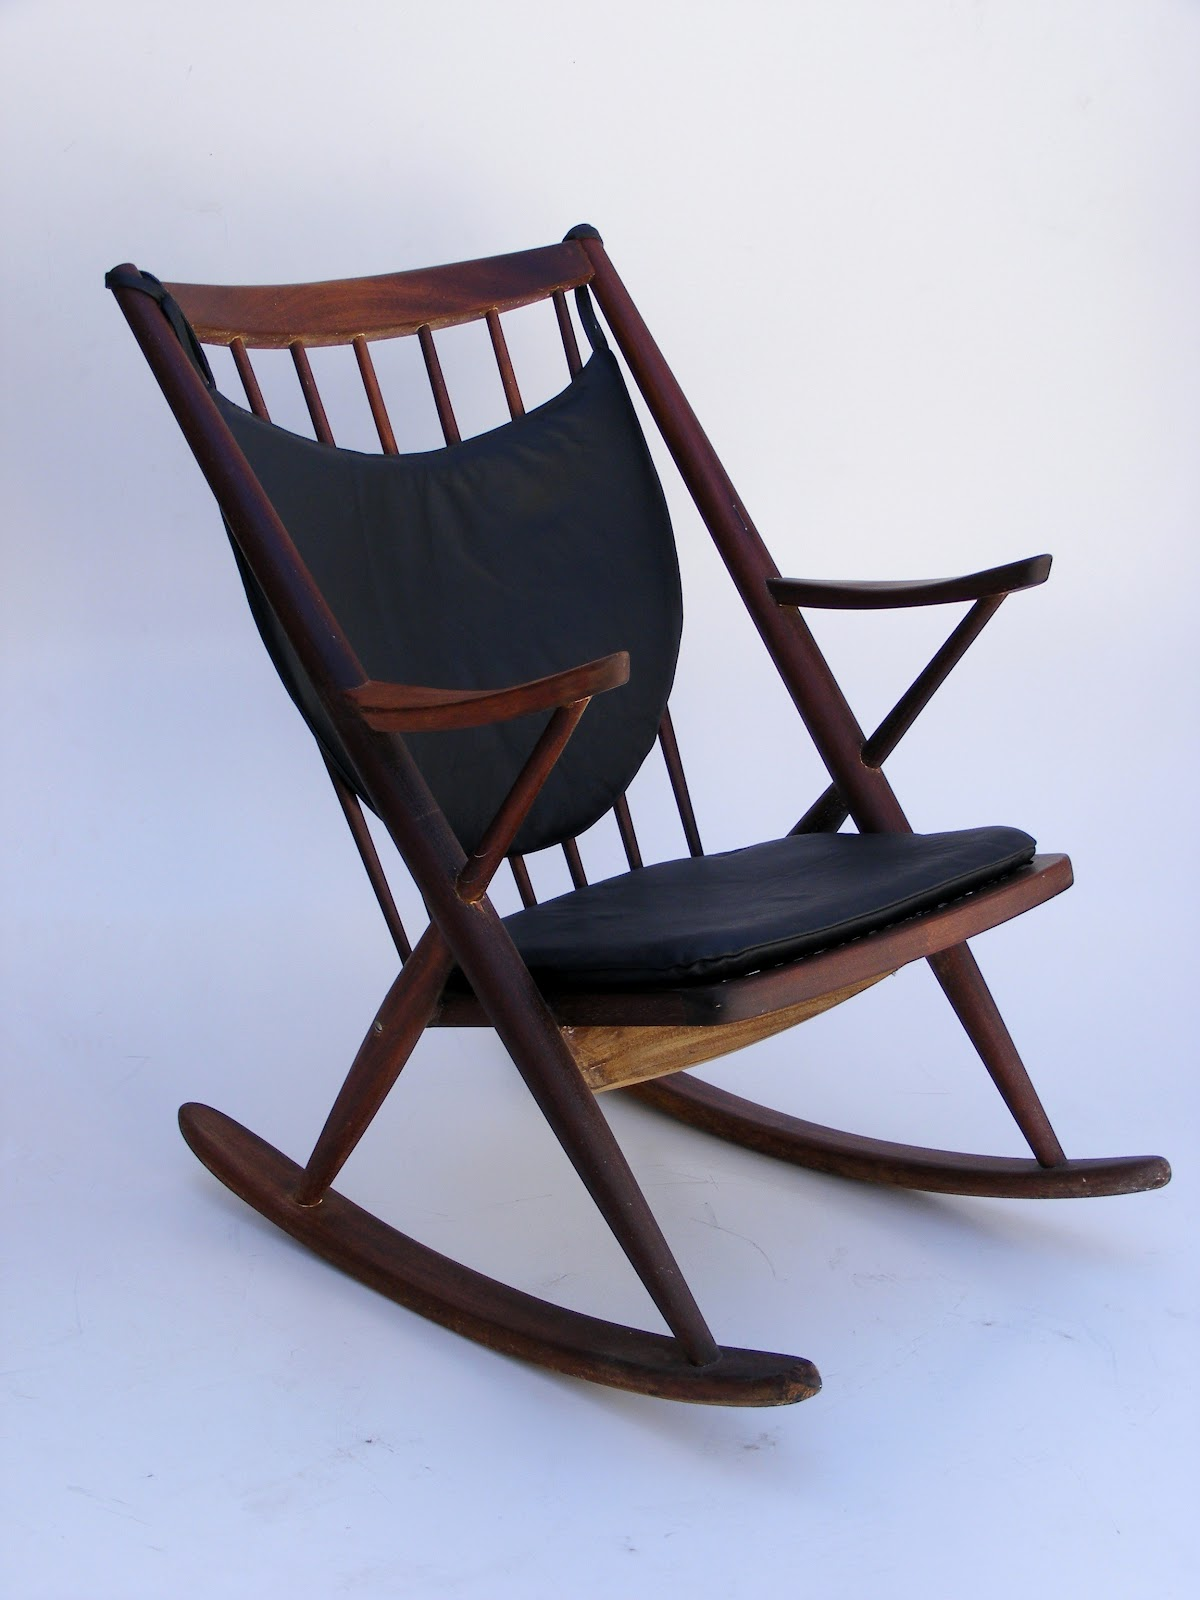 Frank Reenskaug Model 182 rocking chair with leather cushions